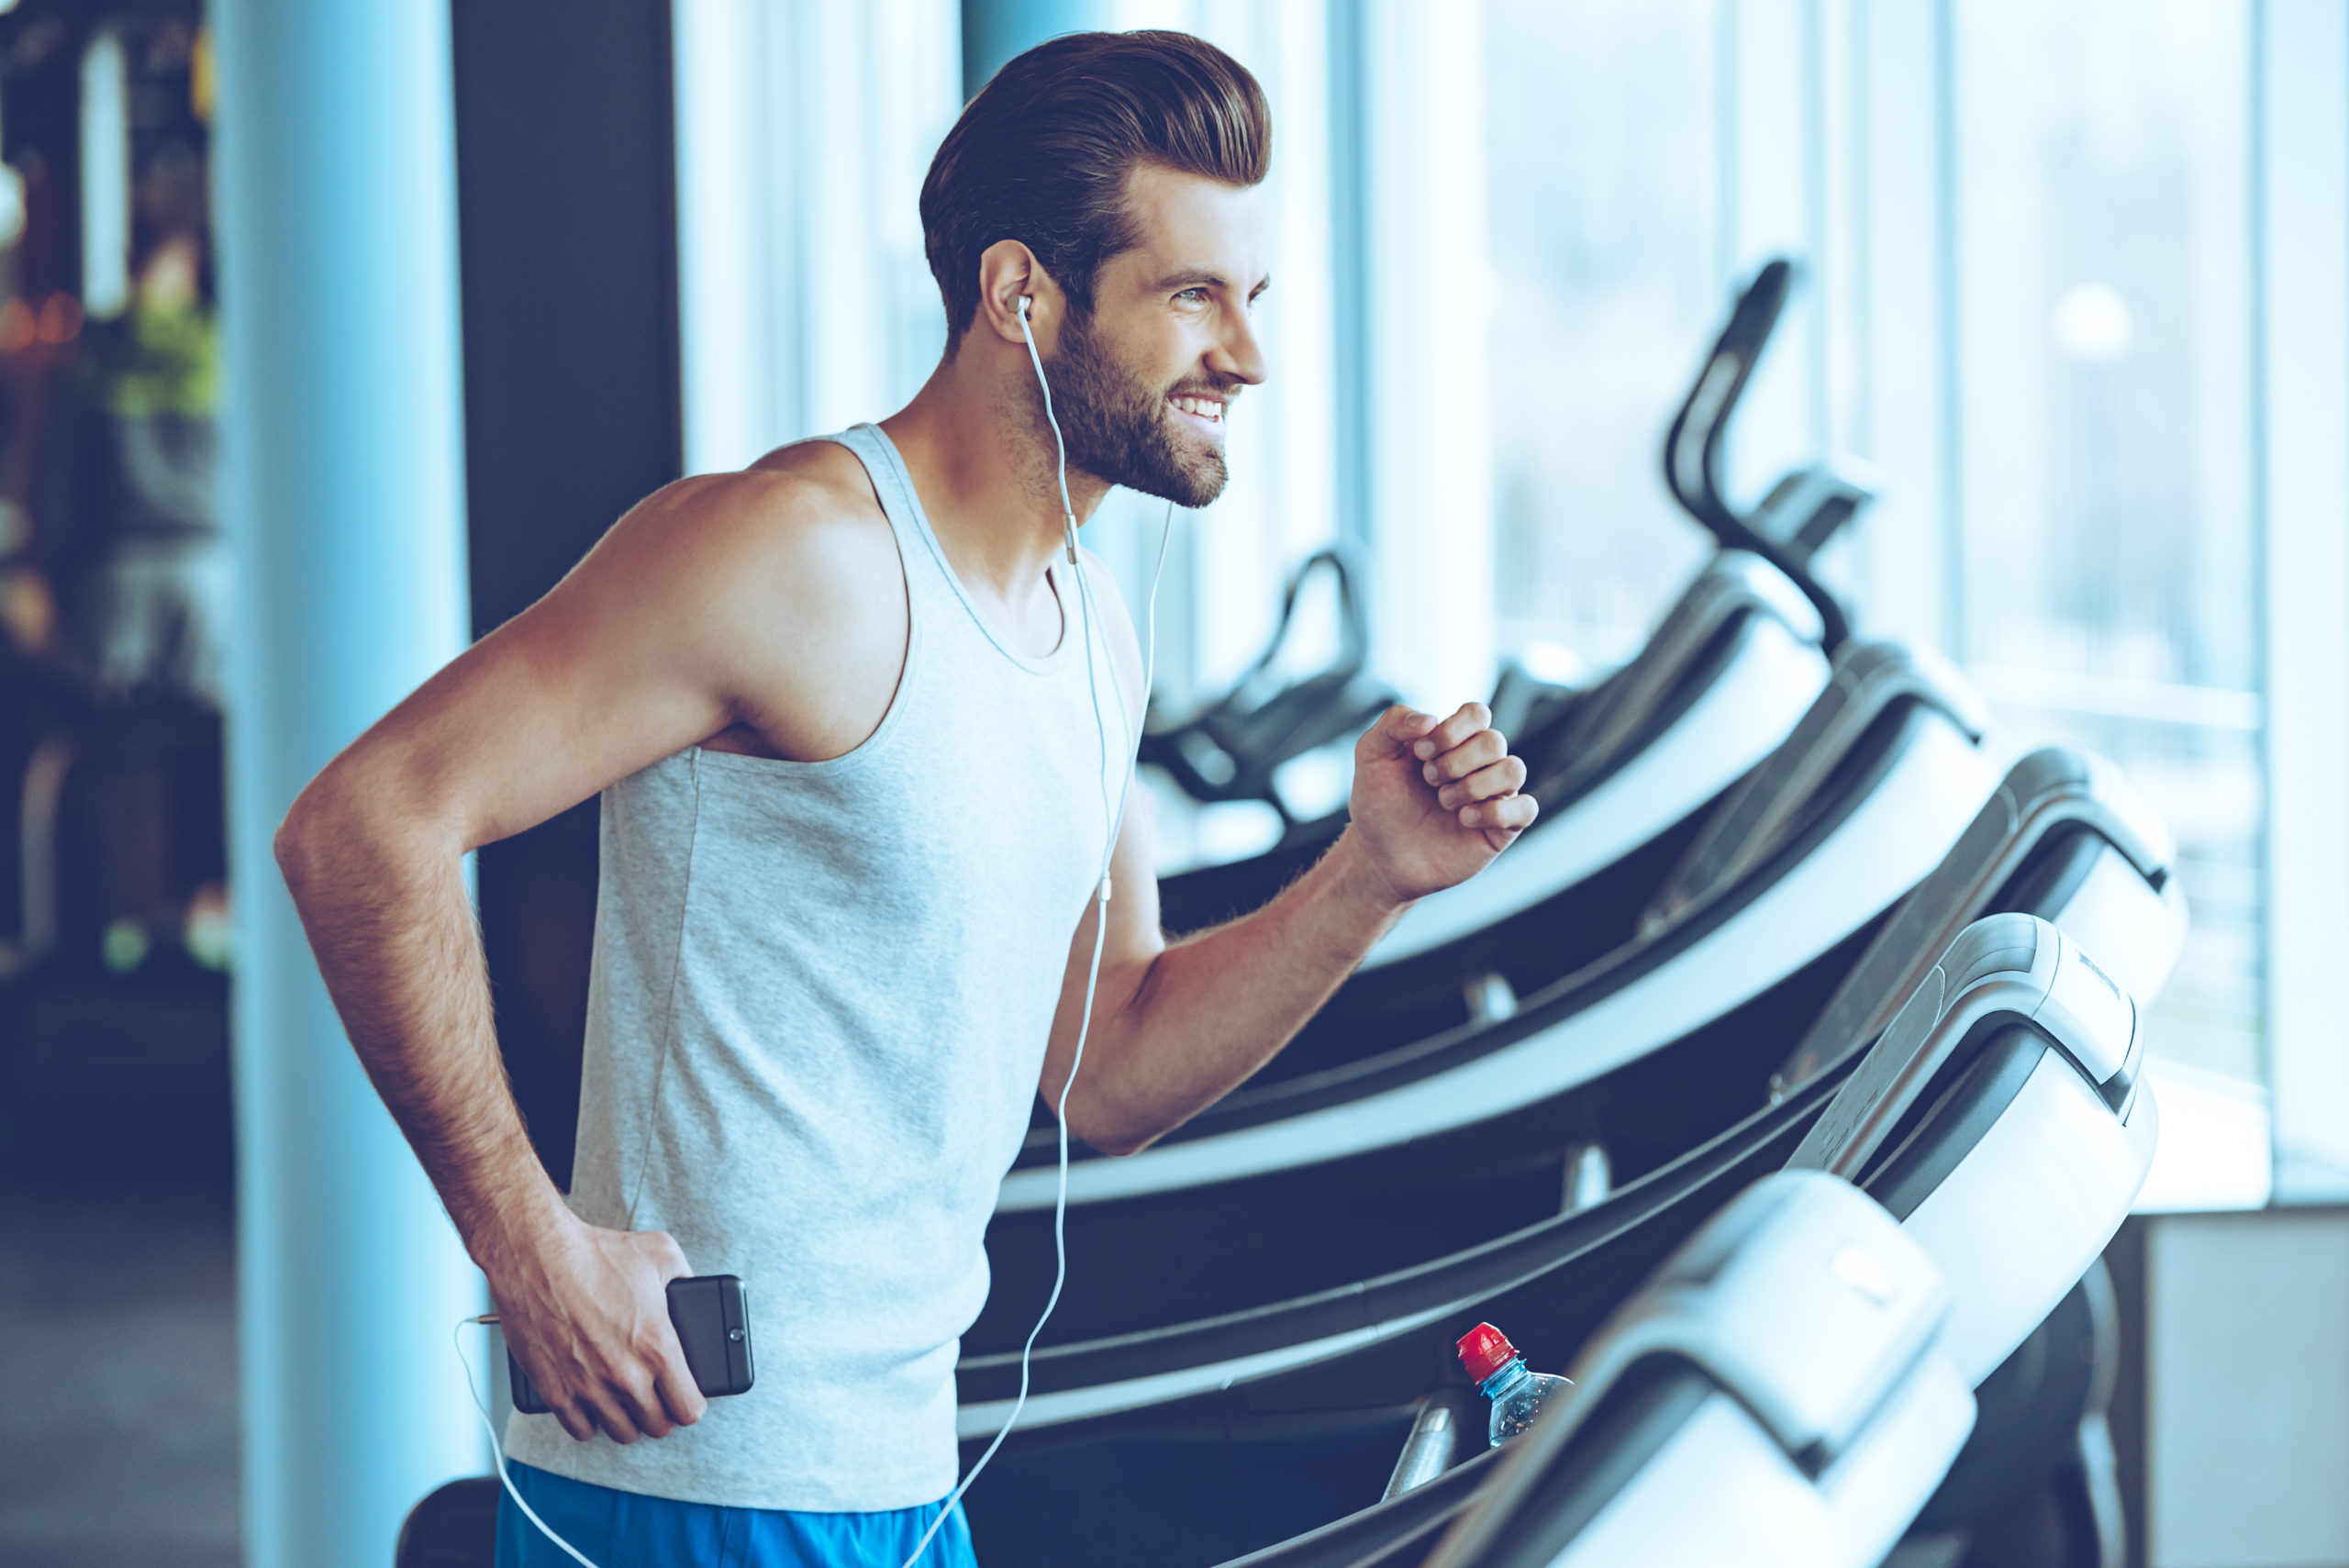 How Does Music Affect Your Workout? - Fitness Nation